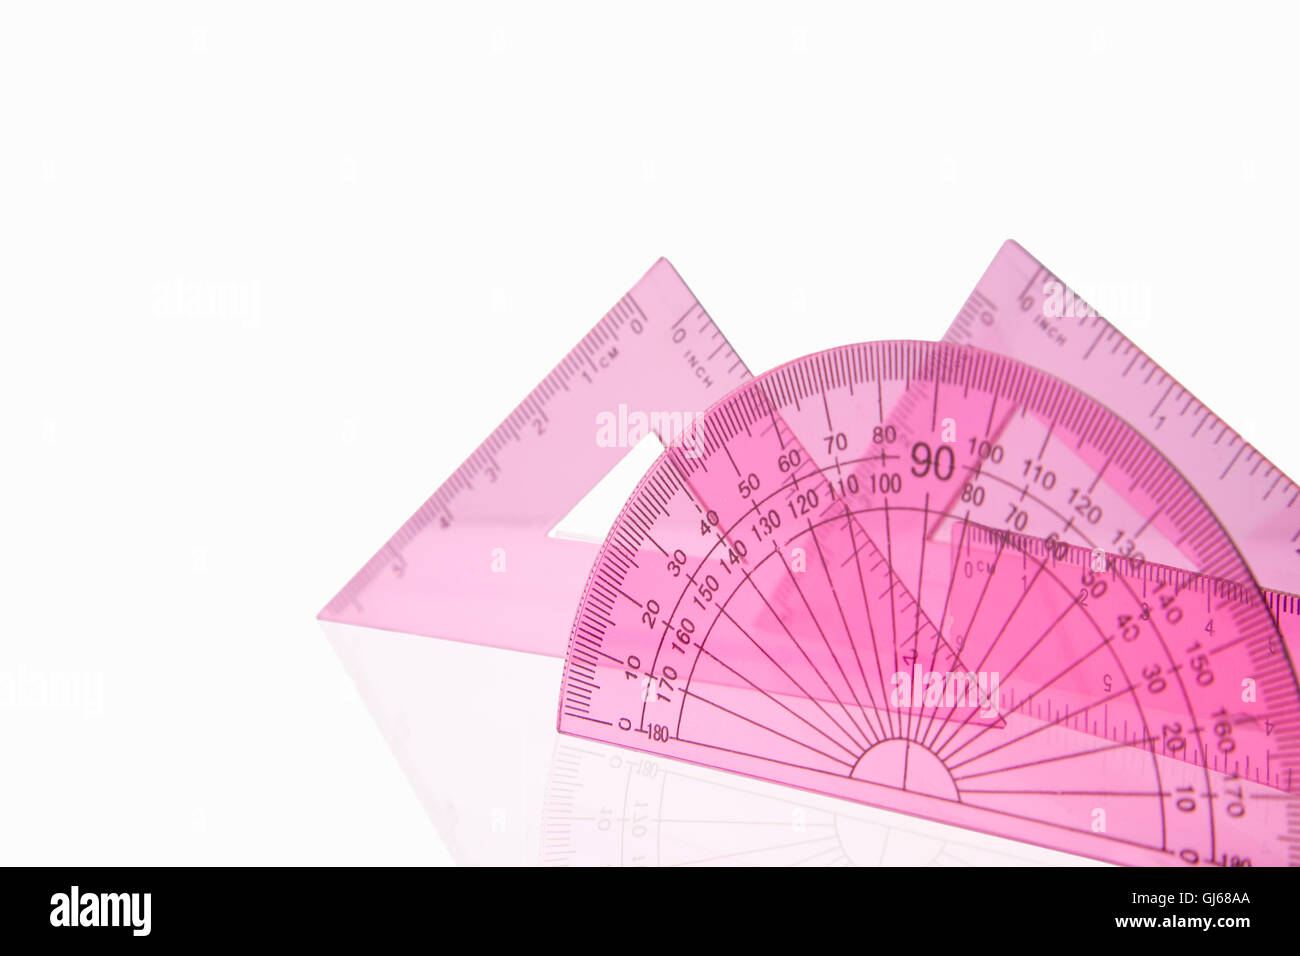 Close up shot of a pink maths set isolated on a white background - Stock Image